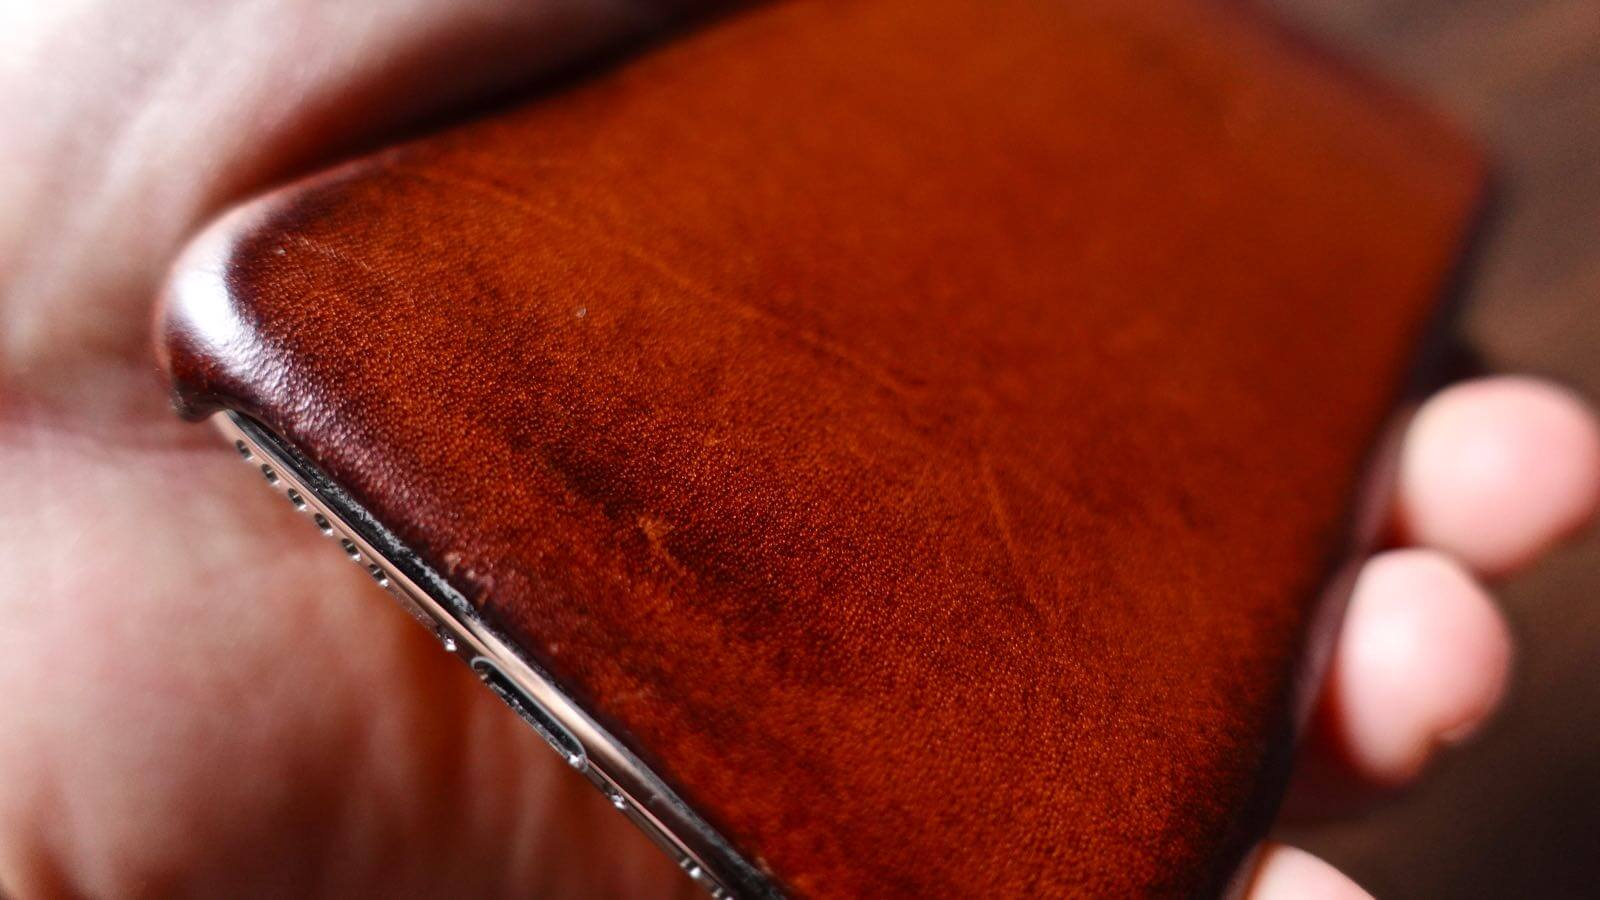 0215 iPhone Leather Case 27 A year and a half later